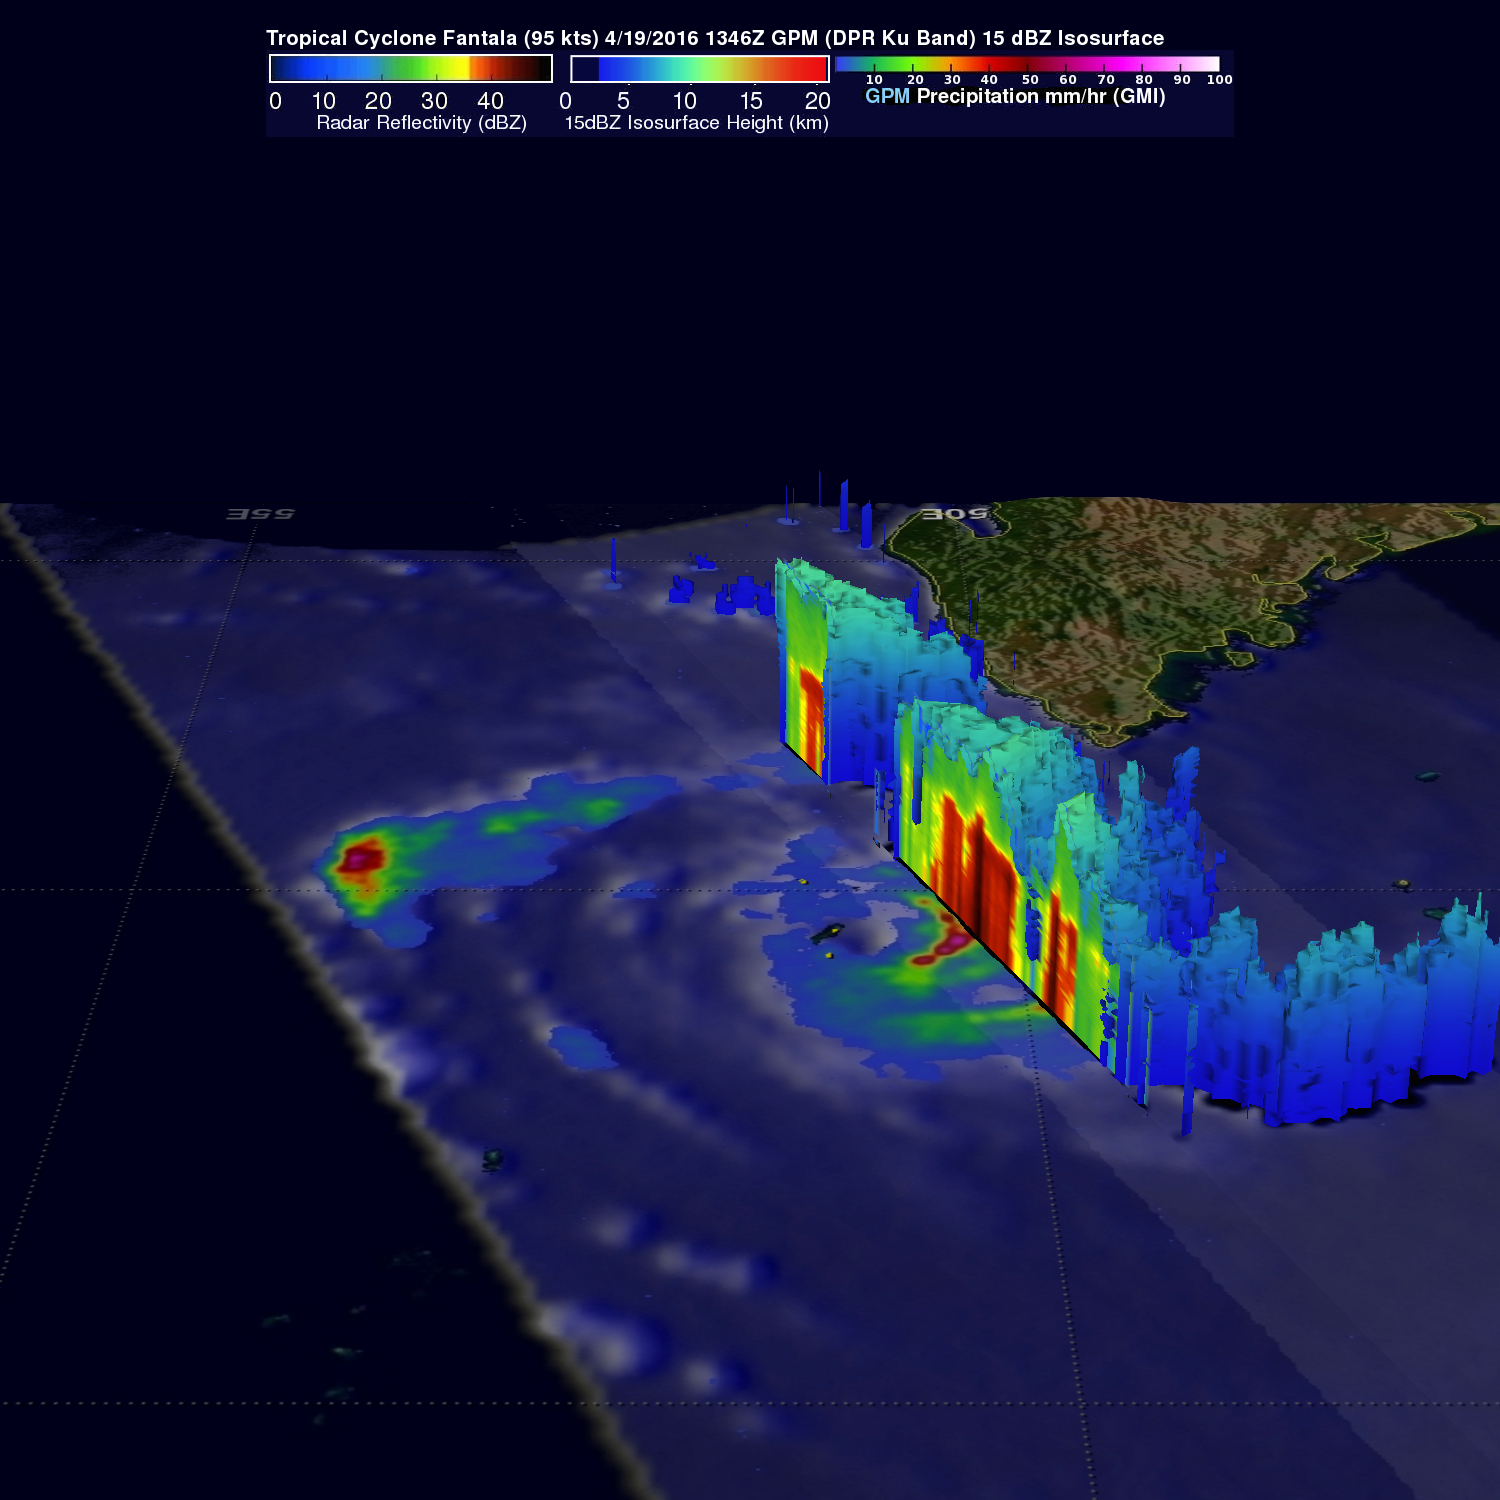 Tropical Cyclone Fantala's Changes Observed By GPM